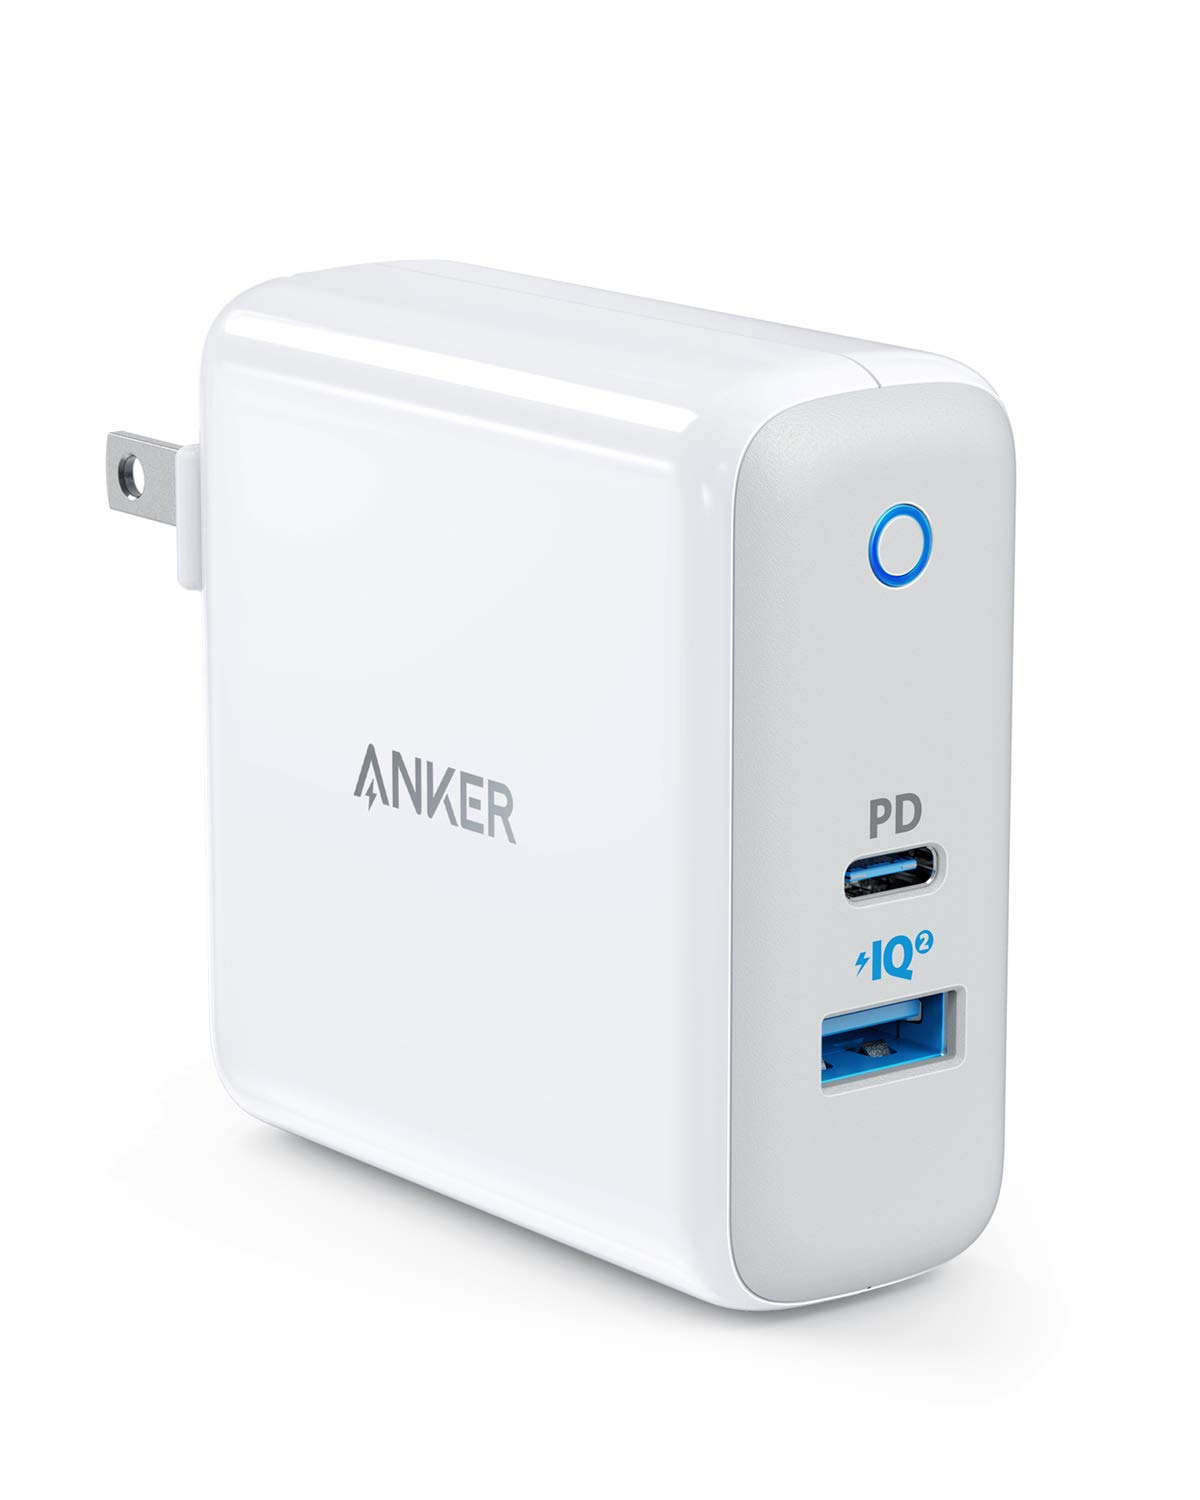 USB C Charger, Anker PowerPort II UL Certified 49.5W Wall Charger with Foldable Plug, One 30W Power Delivery Port for MacBook Air/iPad Pro 2018, ...